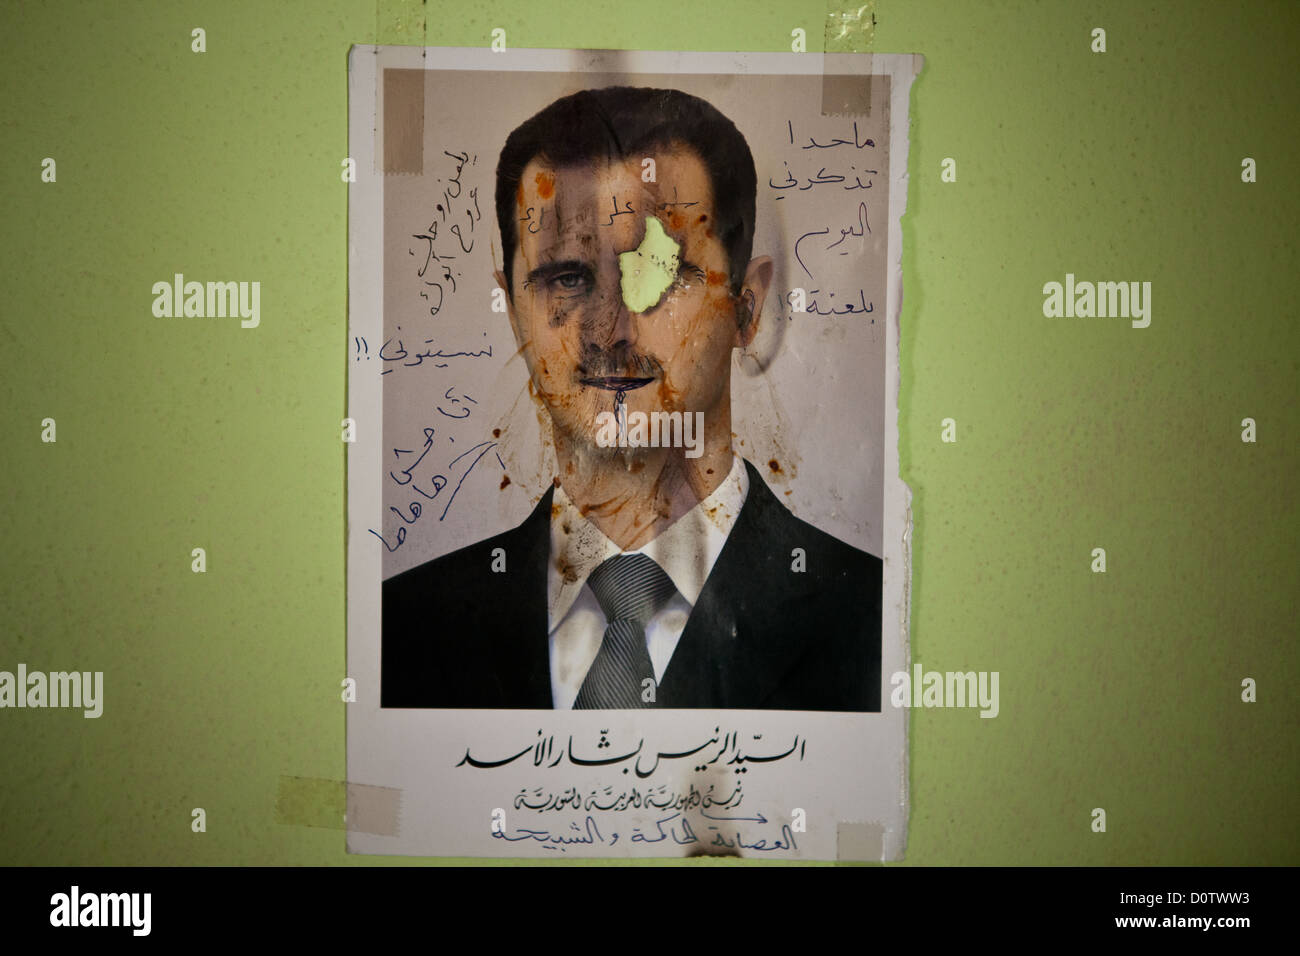 01/10/12, Syria. Photograph of Bashar al-Assad adorns a hospital wall. A patient who had lost an eye took a lighter - Stock Image